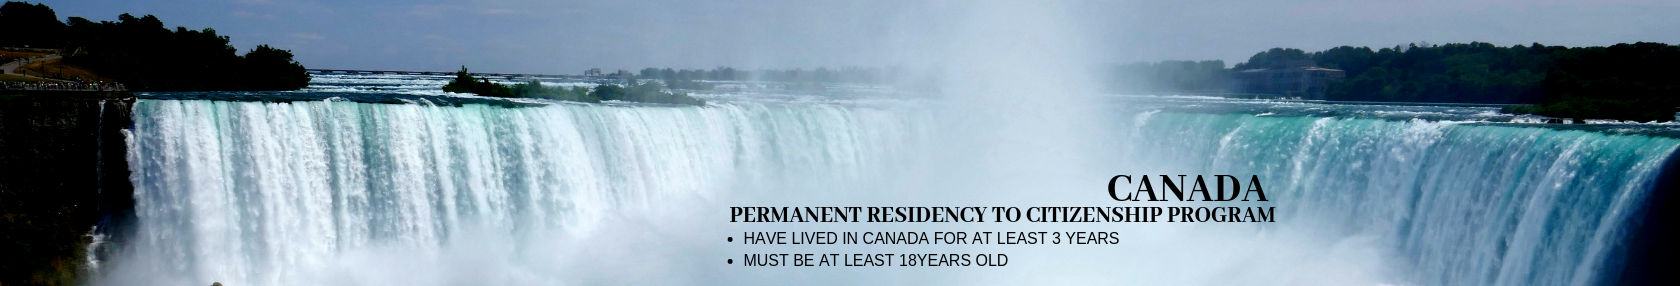 Canadian Permanent Residency to Citizenship